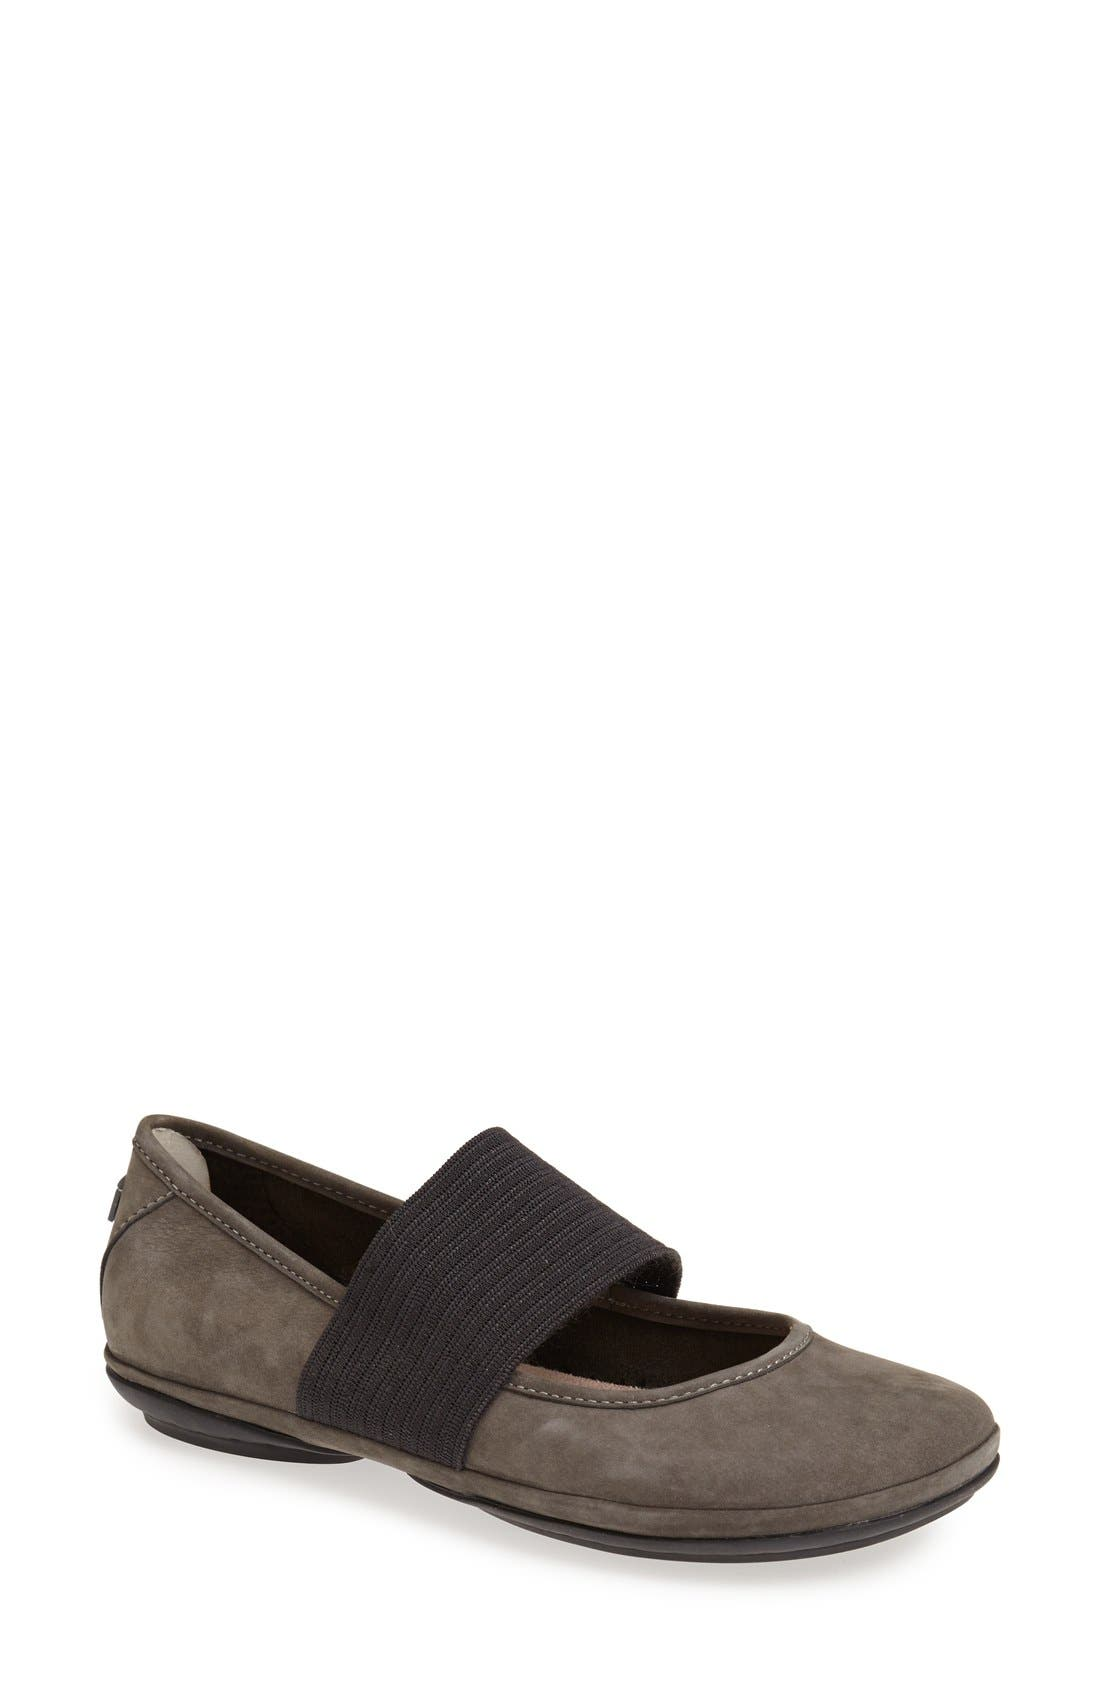 CAMPER Right Nina Ballerina Flat